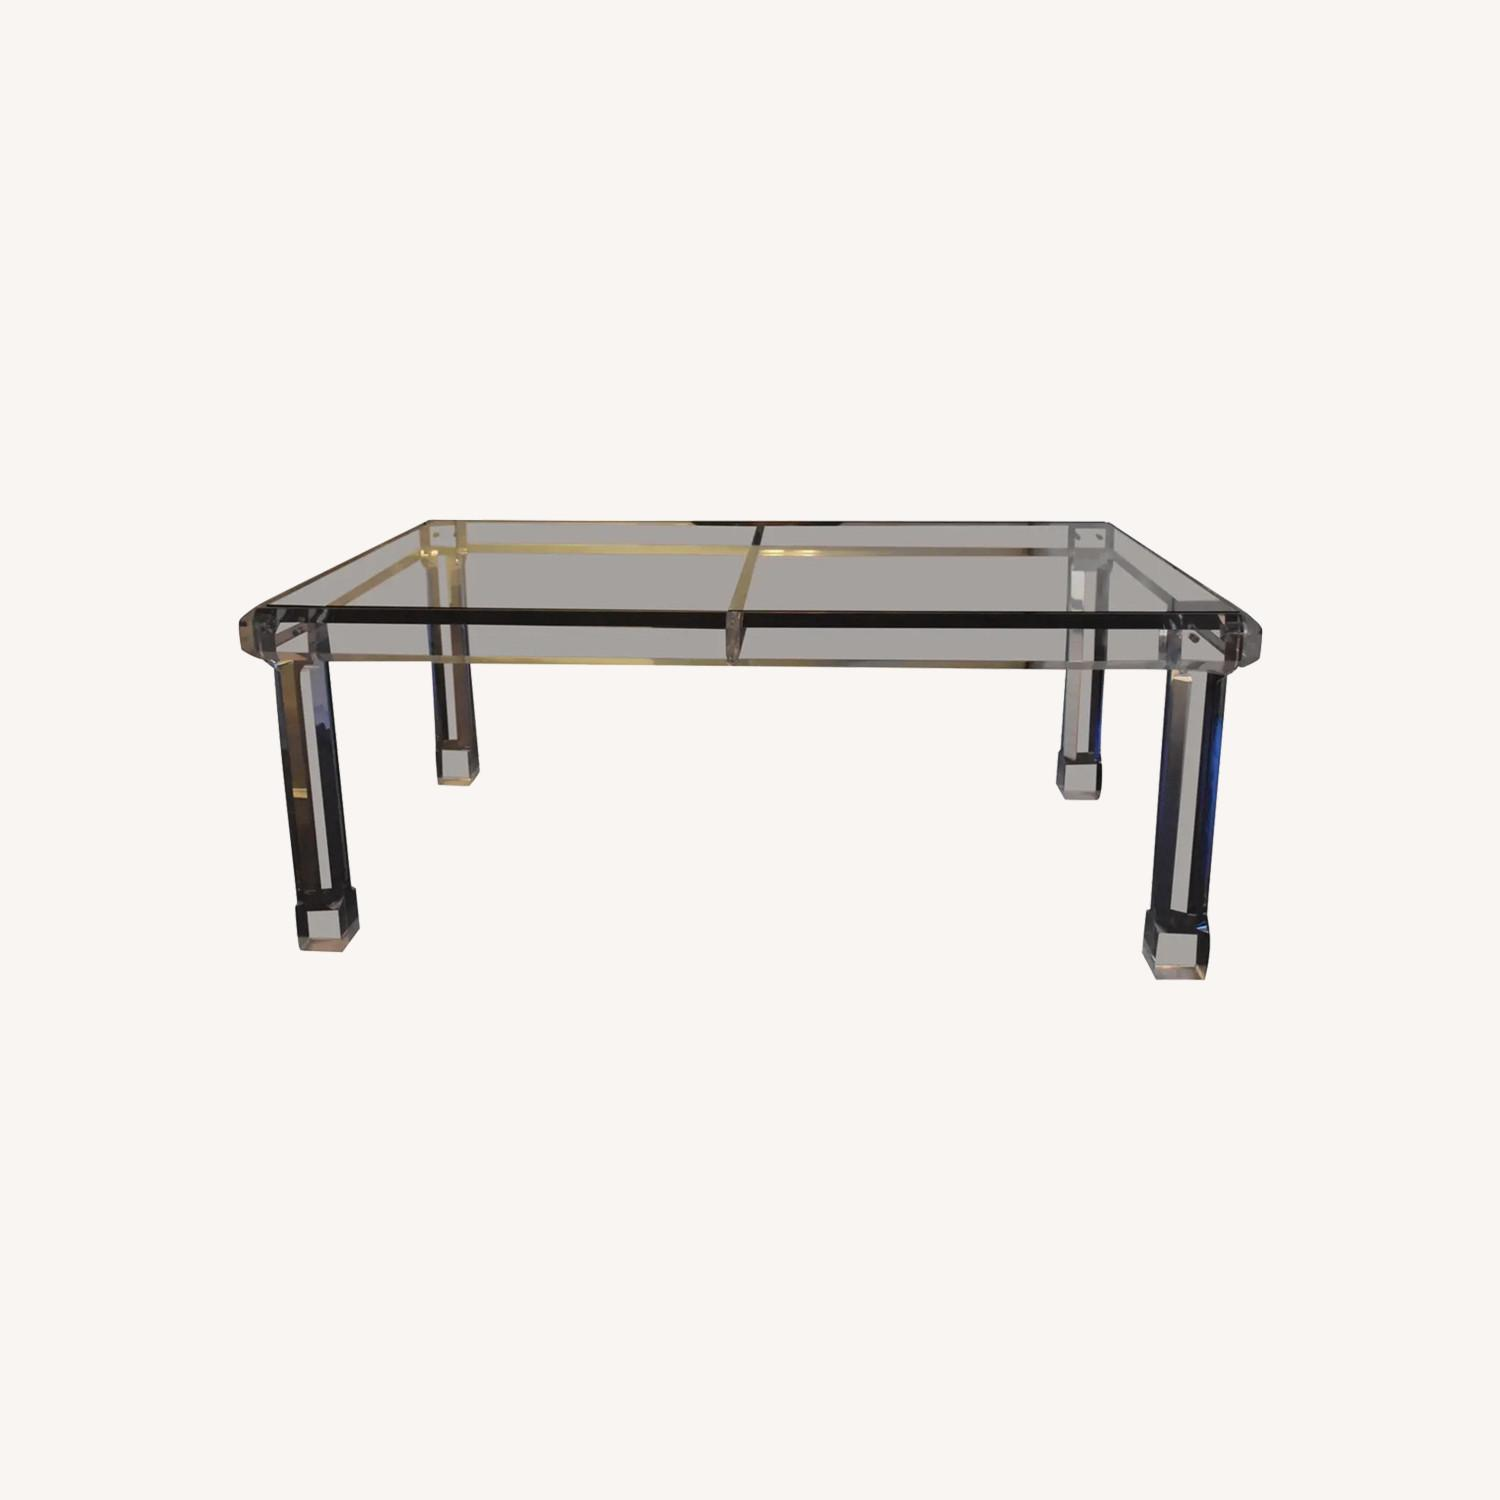 1970s Glass & Lucite Dining Room Table - image-0